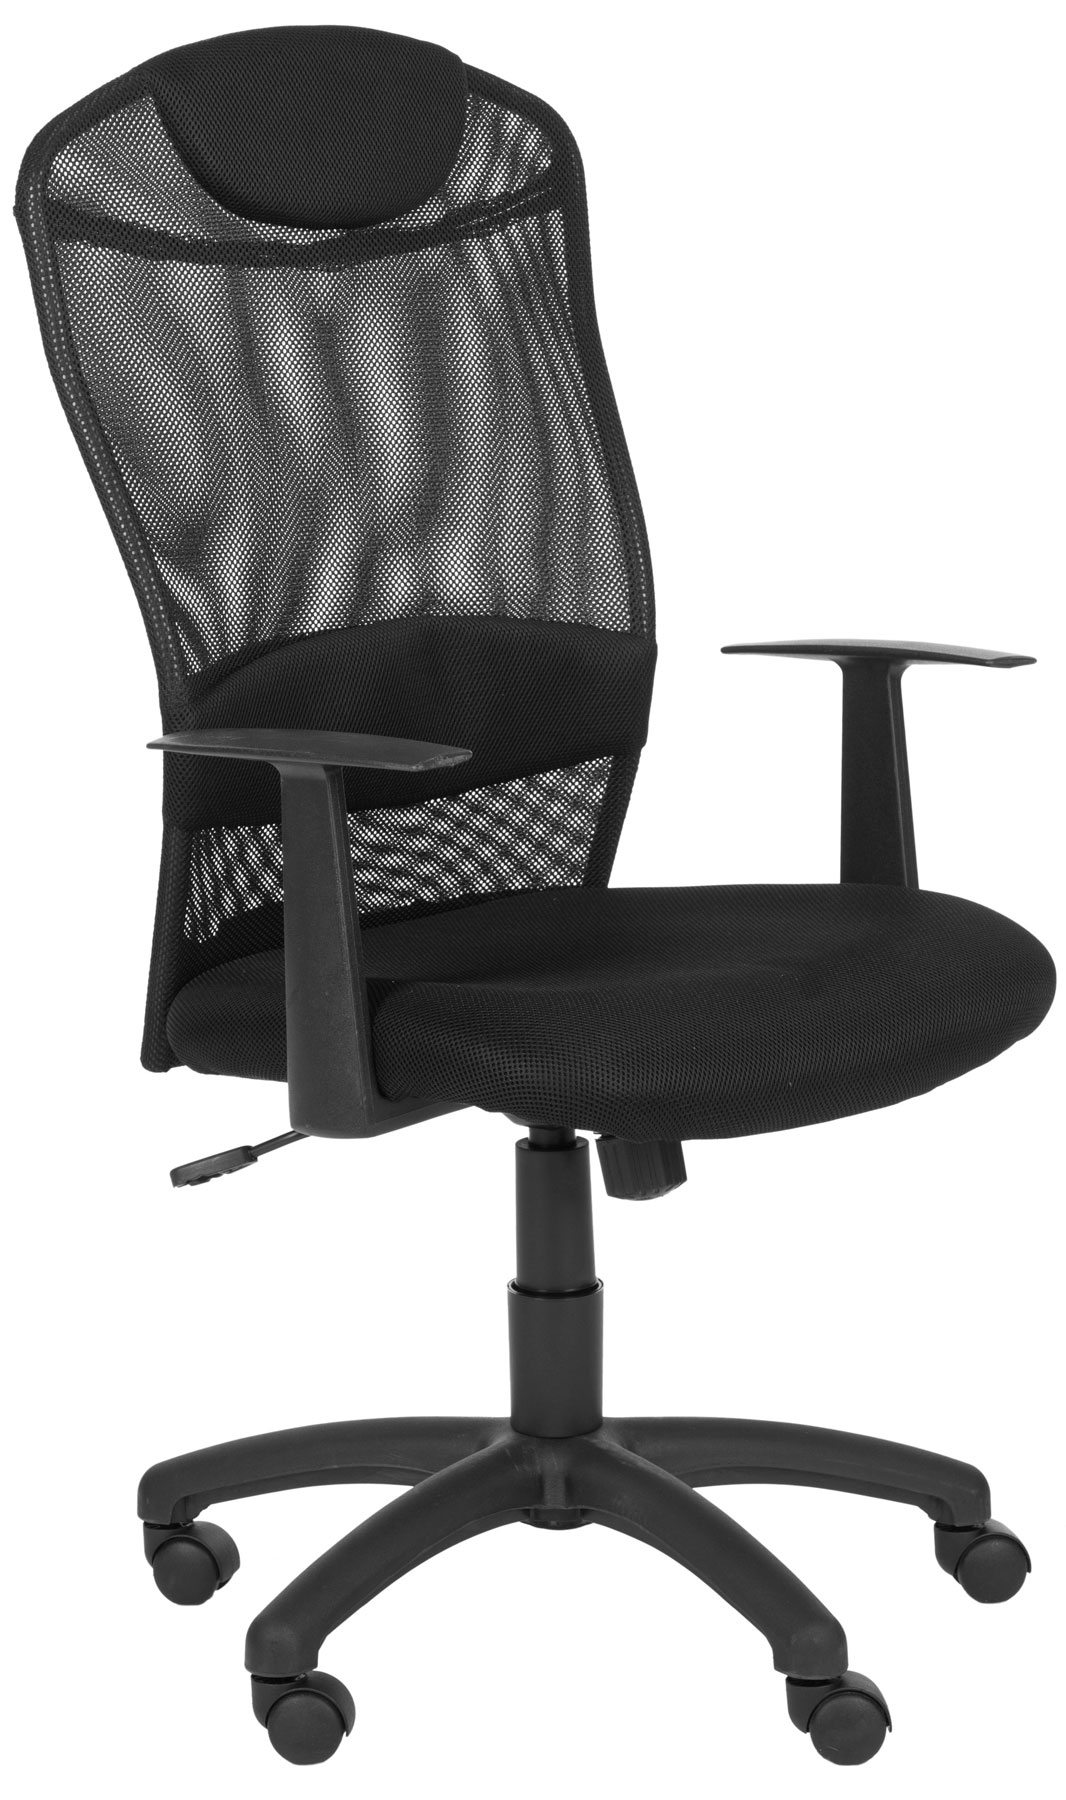 Body Built Chairs Fox8504a Desk Chairs Furniture By Safavieh